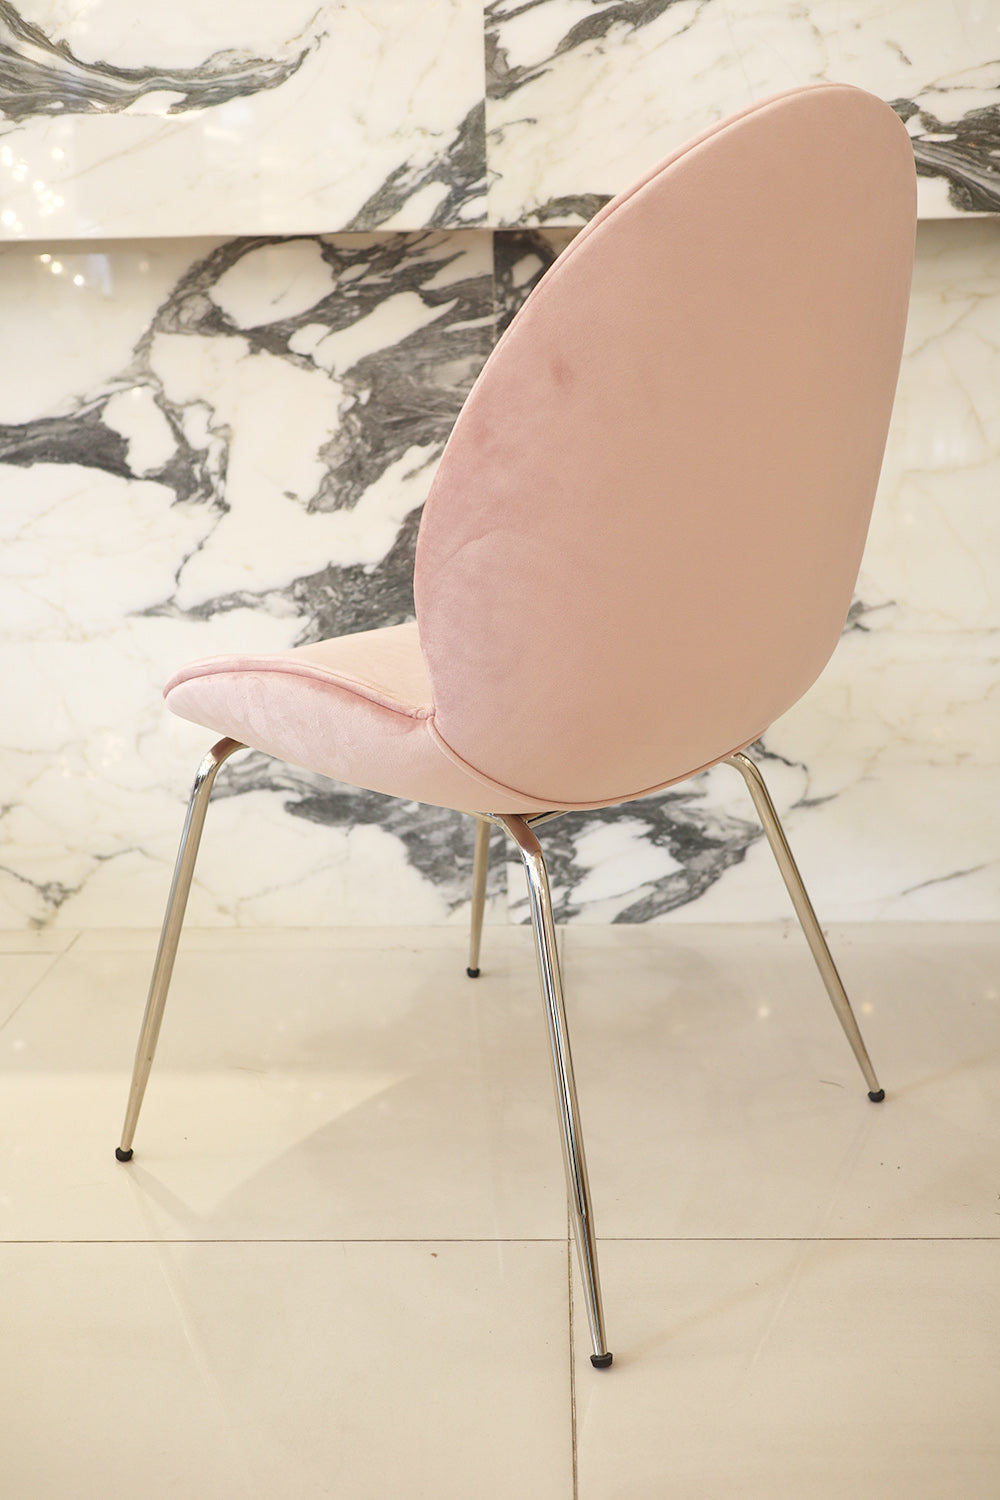 [TG] Replica Beetle Chair Pink (Silver Legs)